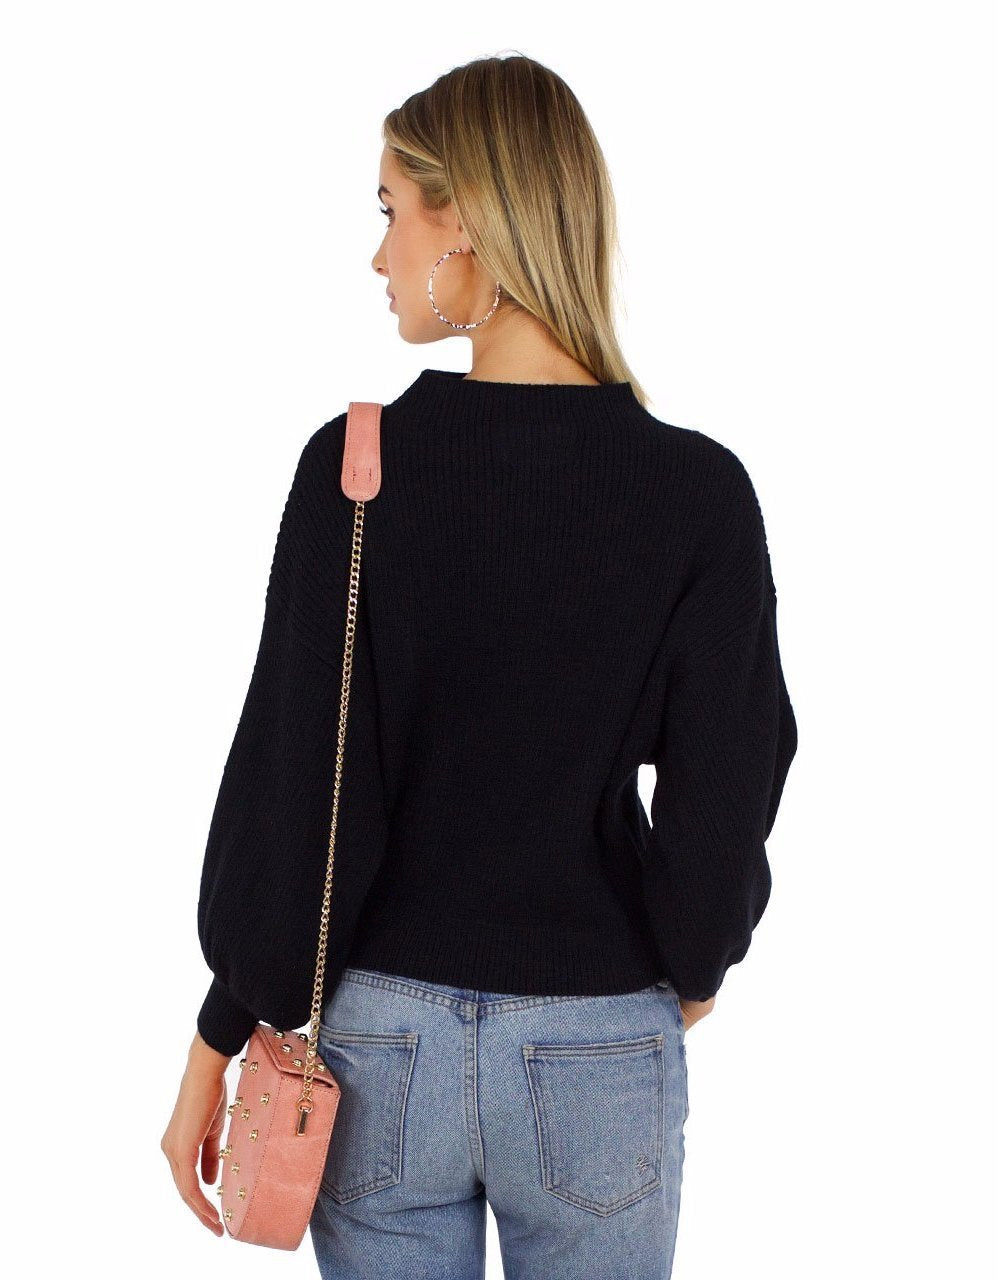 Women wearing a top rental from Line & Dot called Balloon Sleeve Pullover Sweater